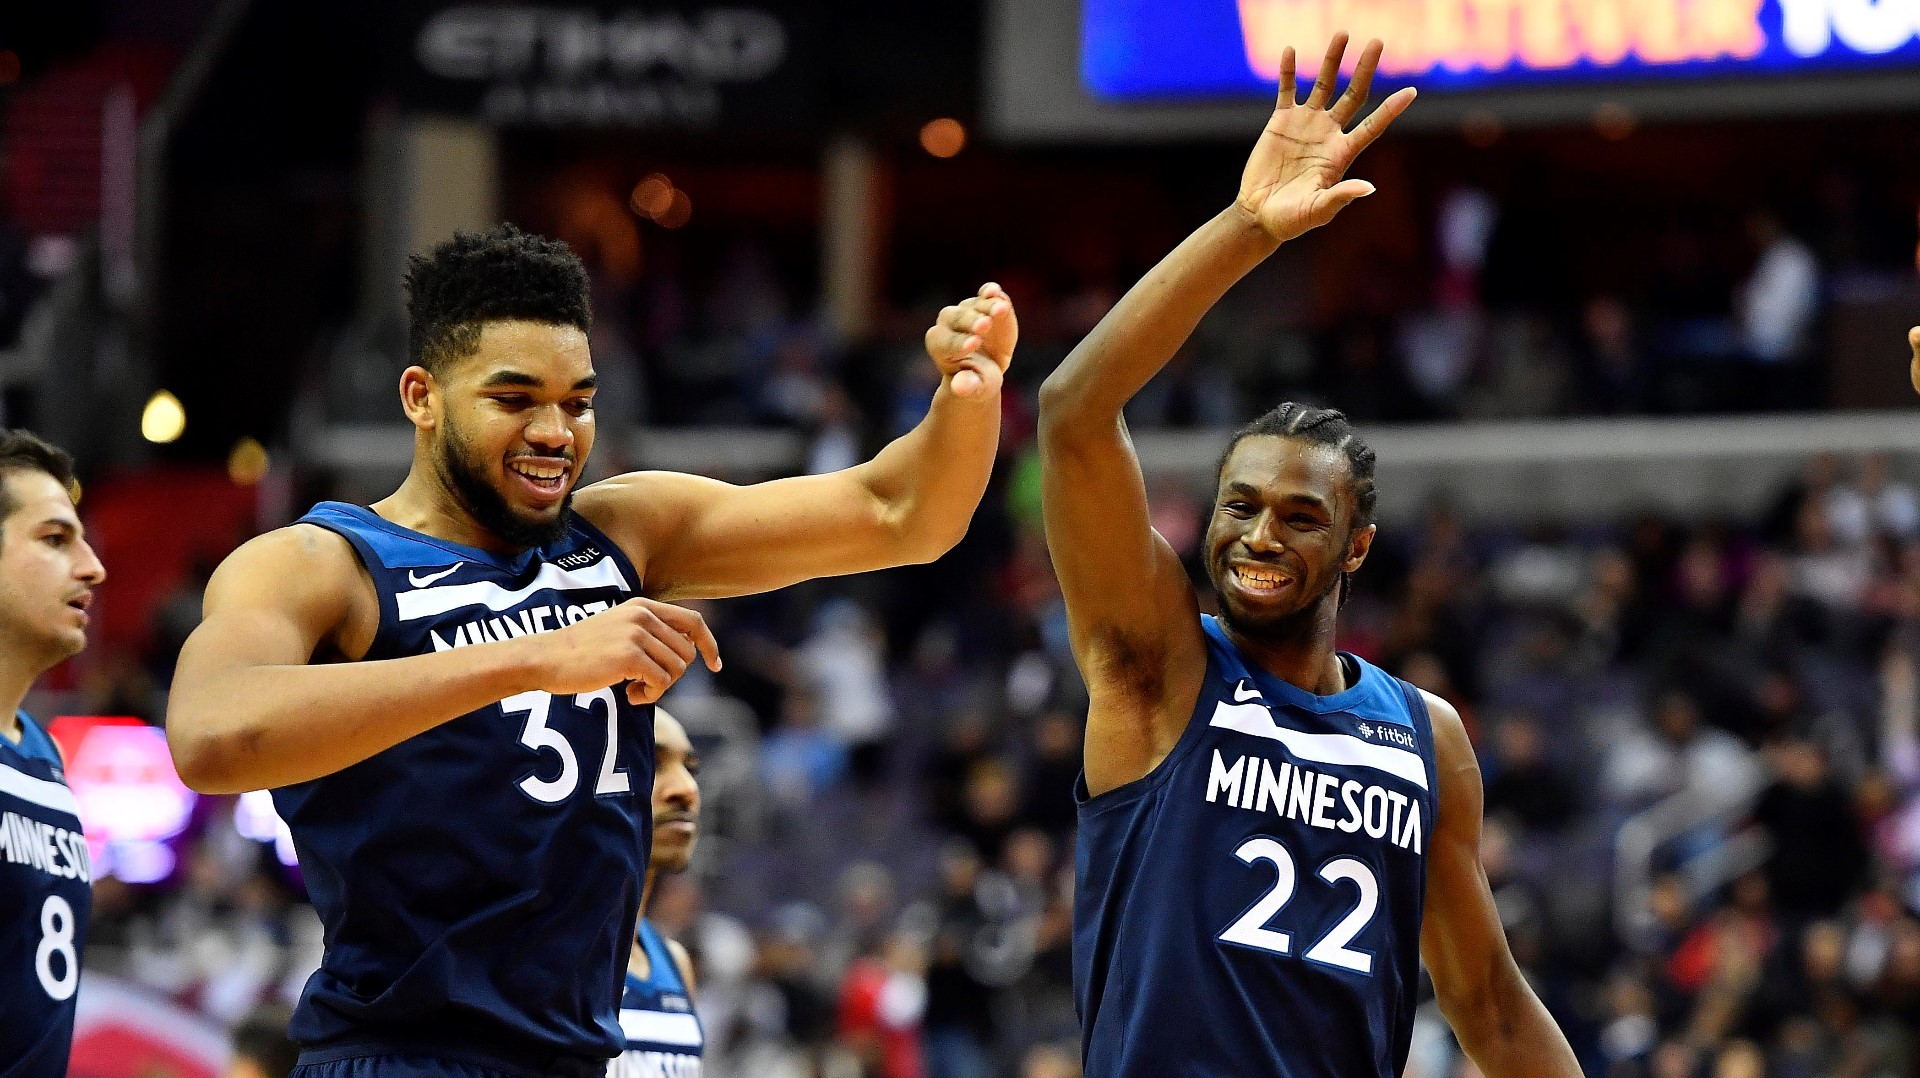 Kat Hit In Face Scores 37 To Lead Wolves Past Wiz 116 111 Kare11 Com